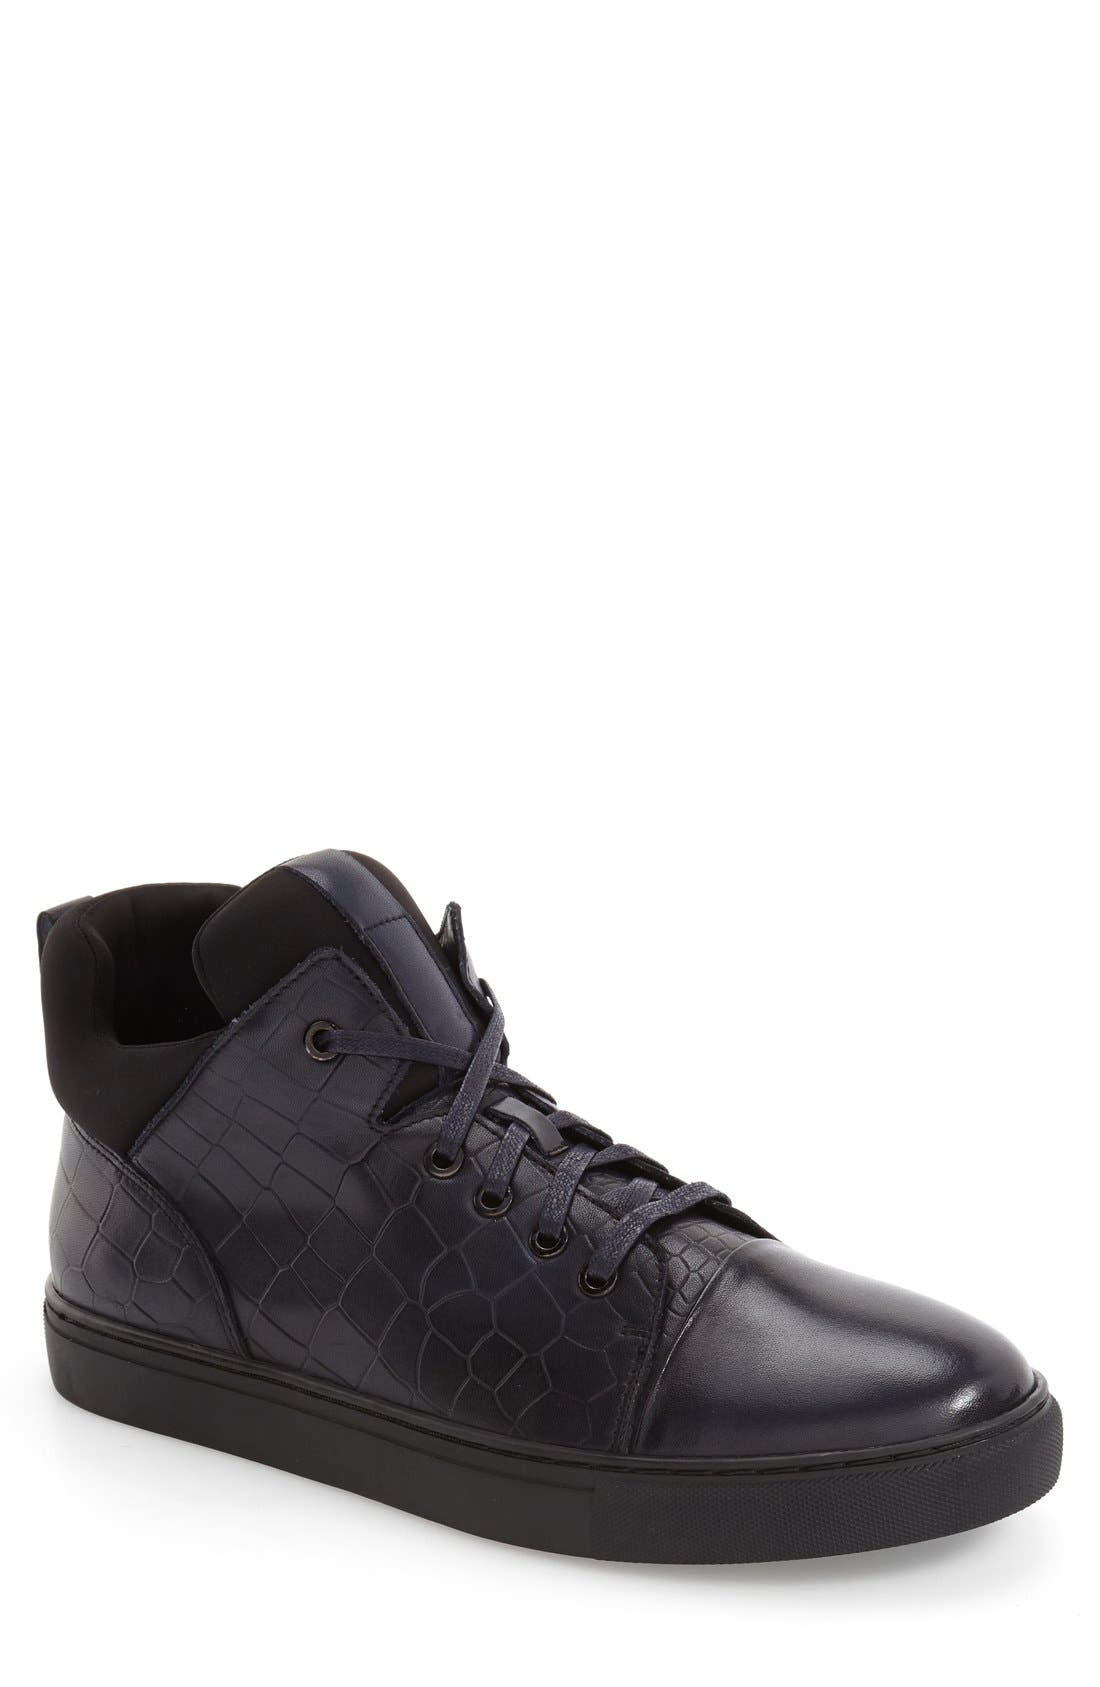 Zanzara 'Remix' High Top Sneaker (Men)